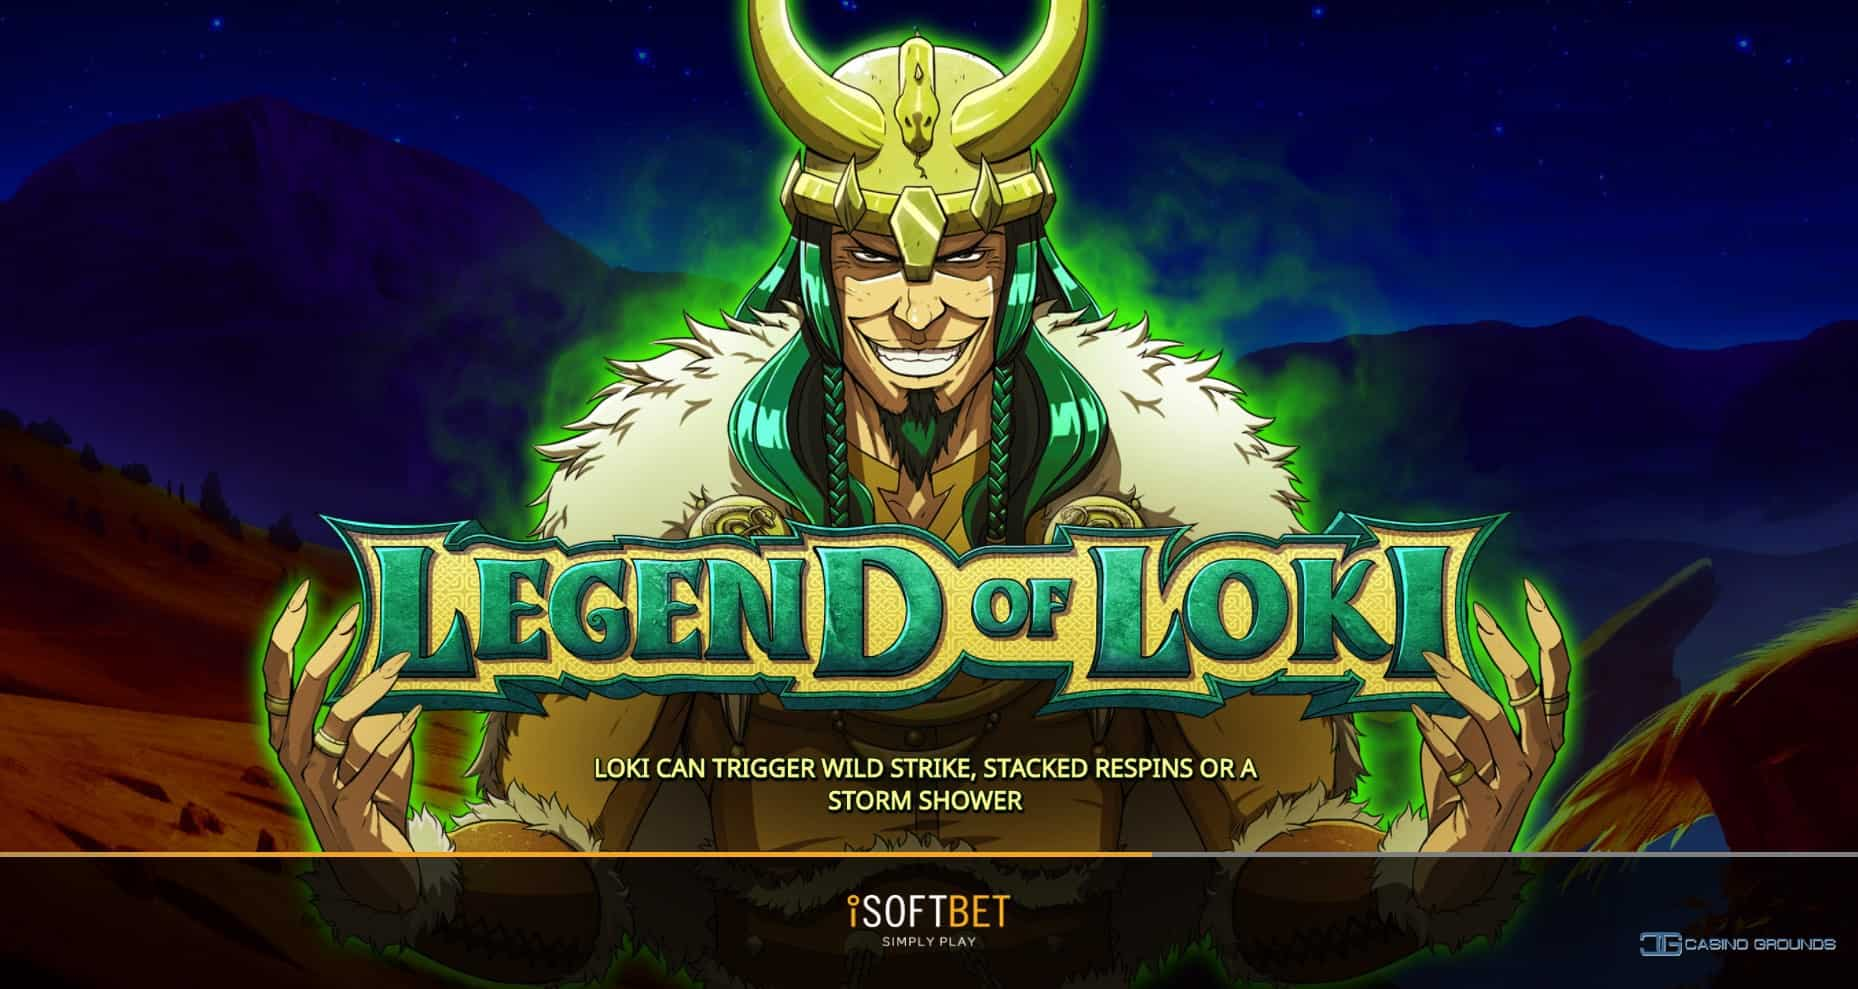 legend of loki slots game logo